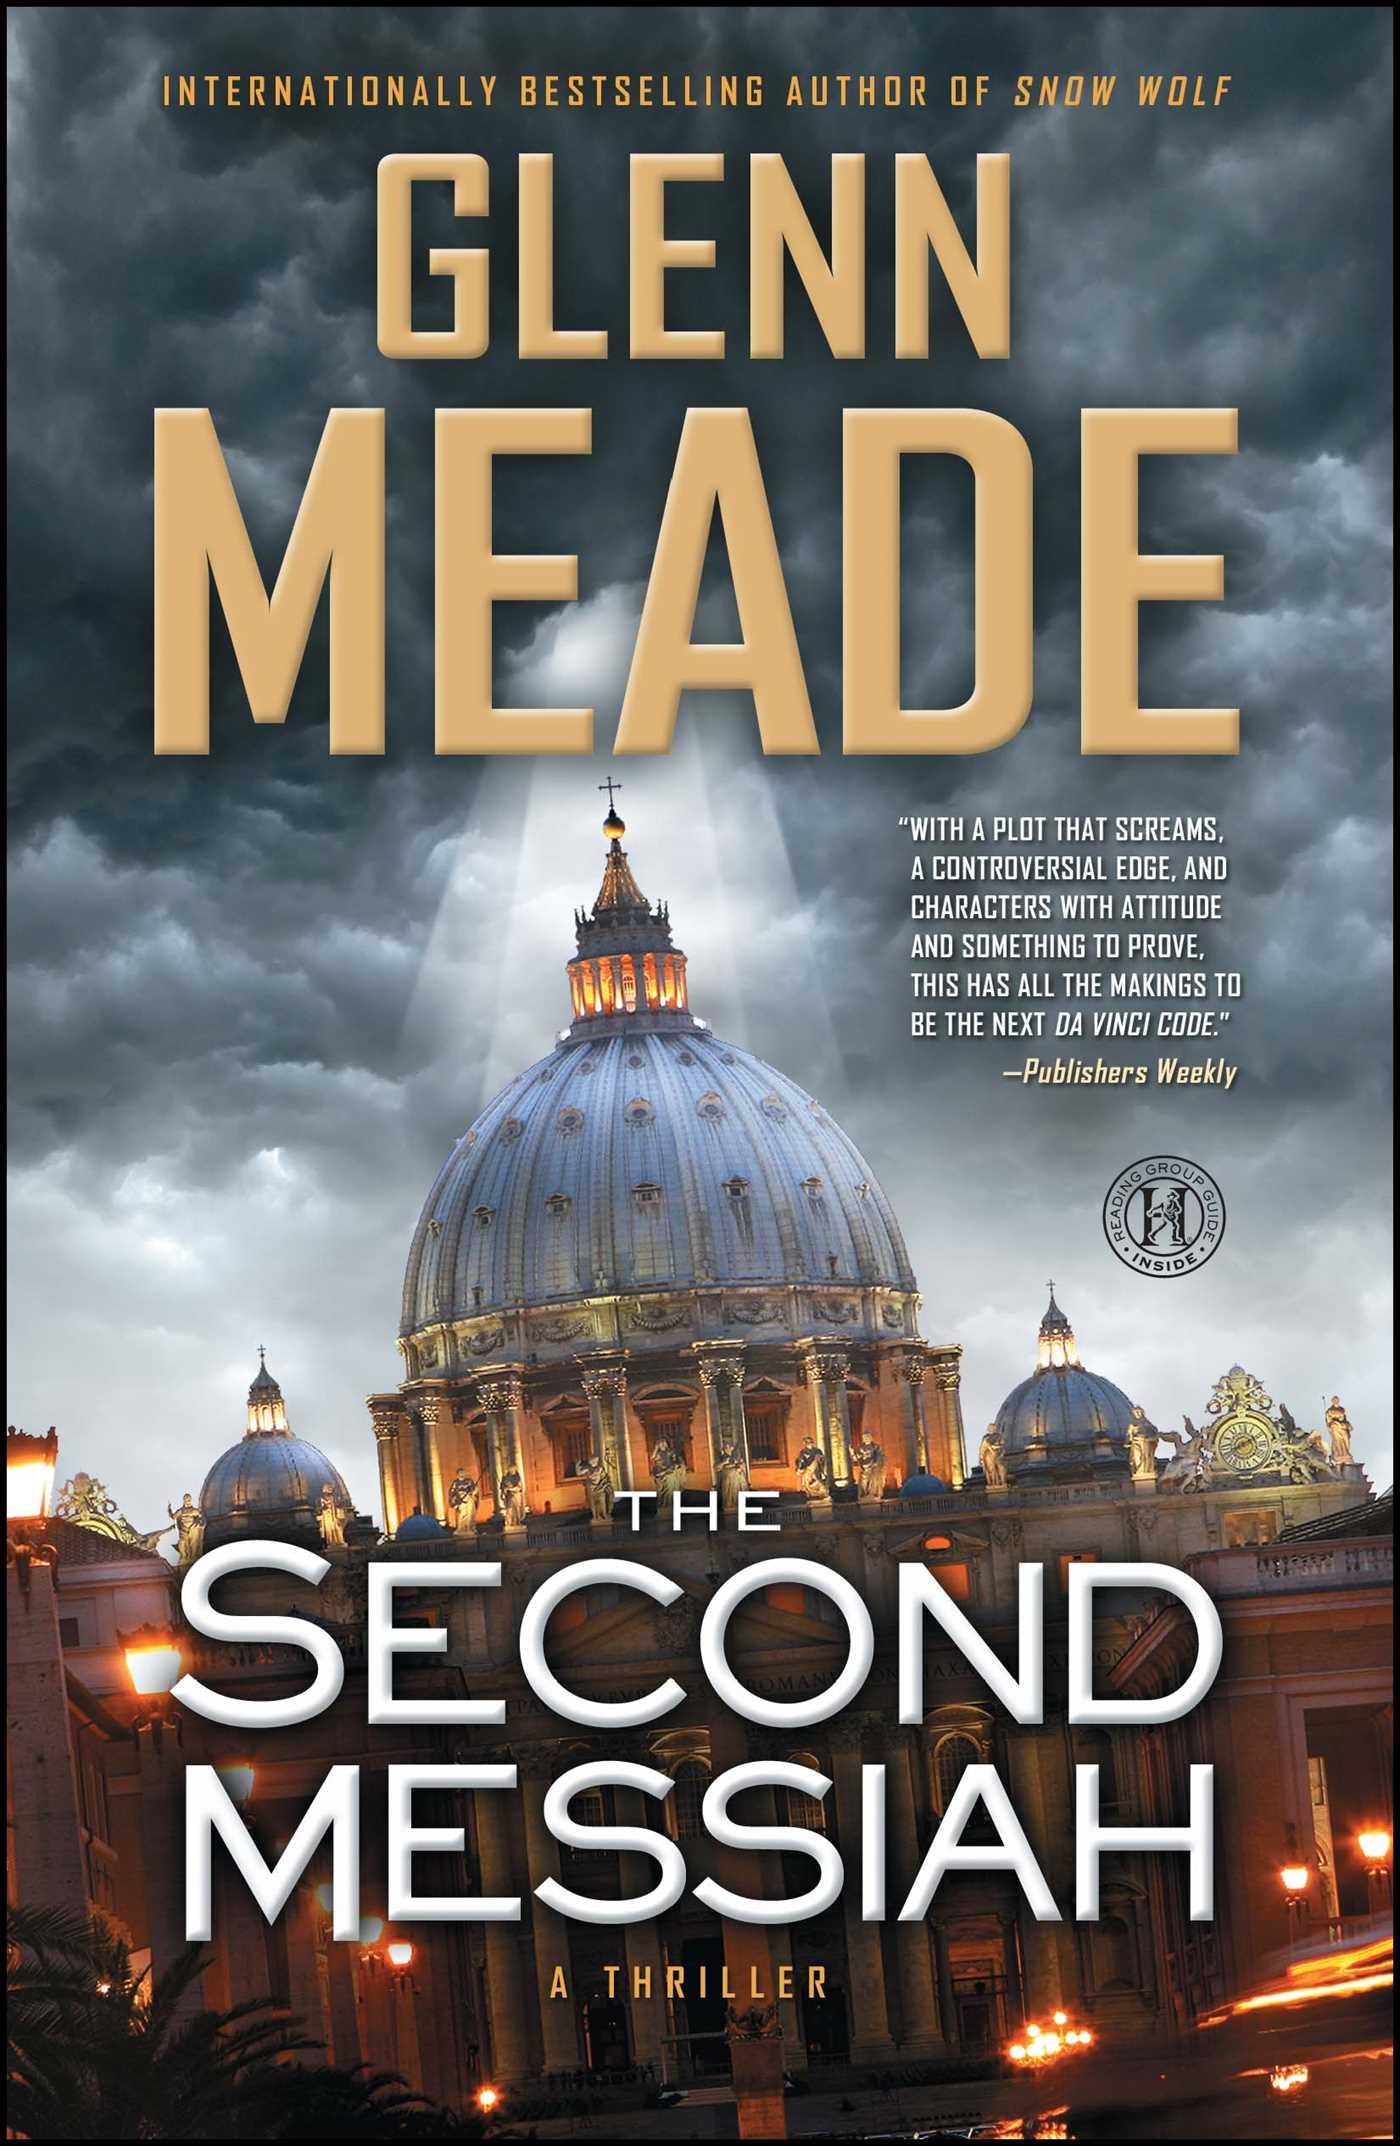 The second messiah 9781451669442 hr